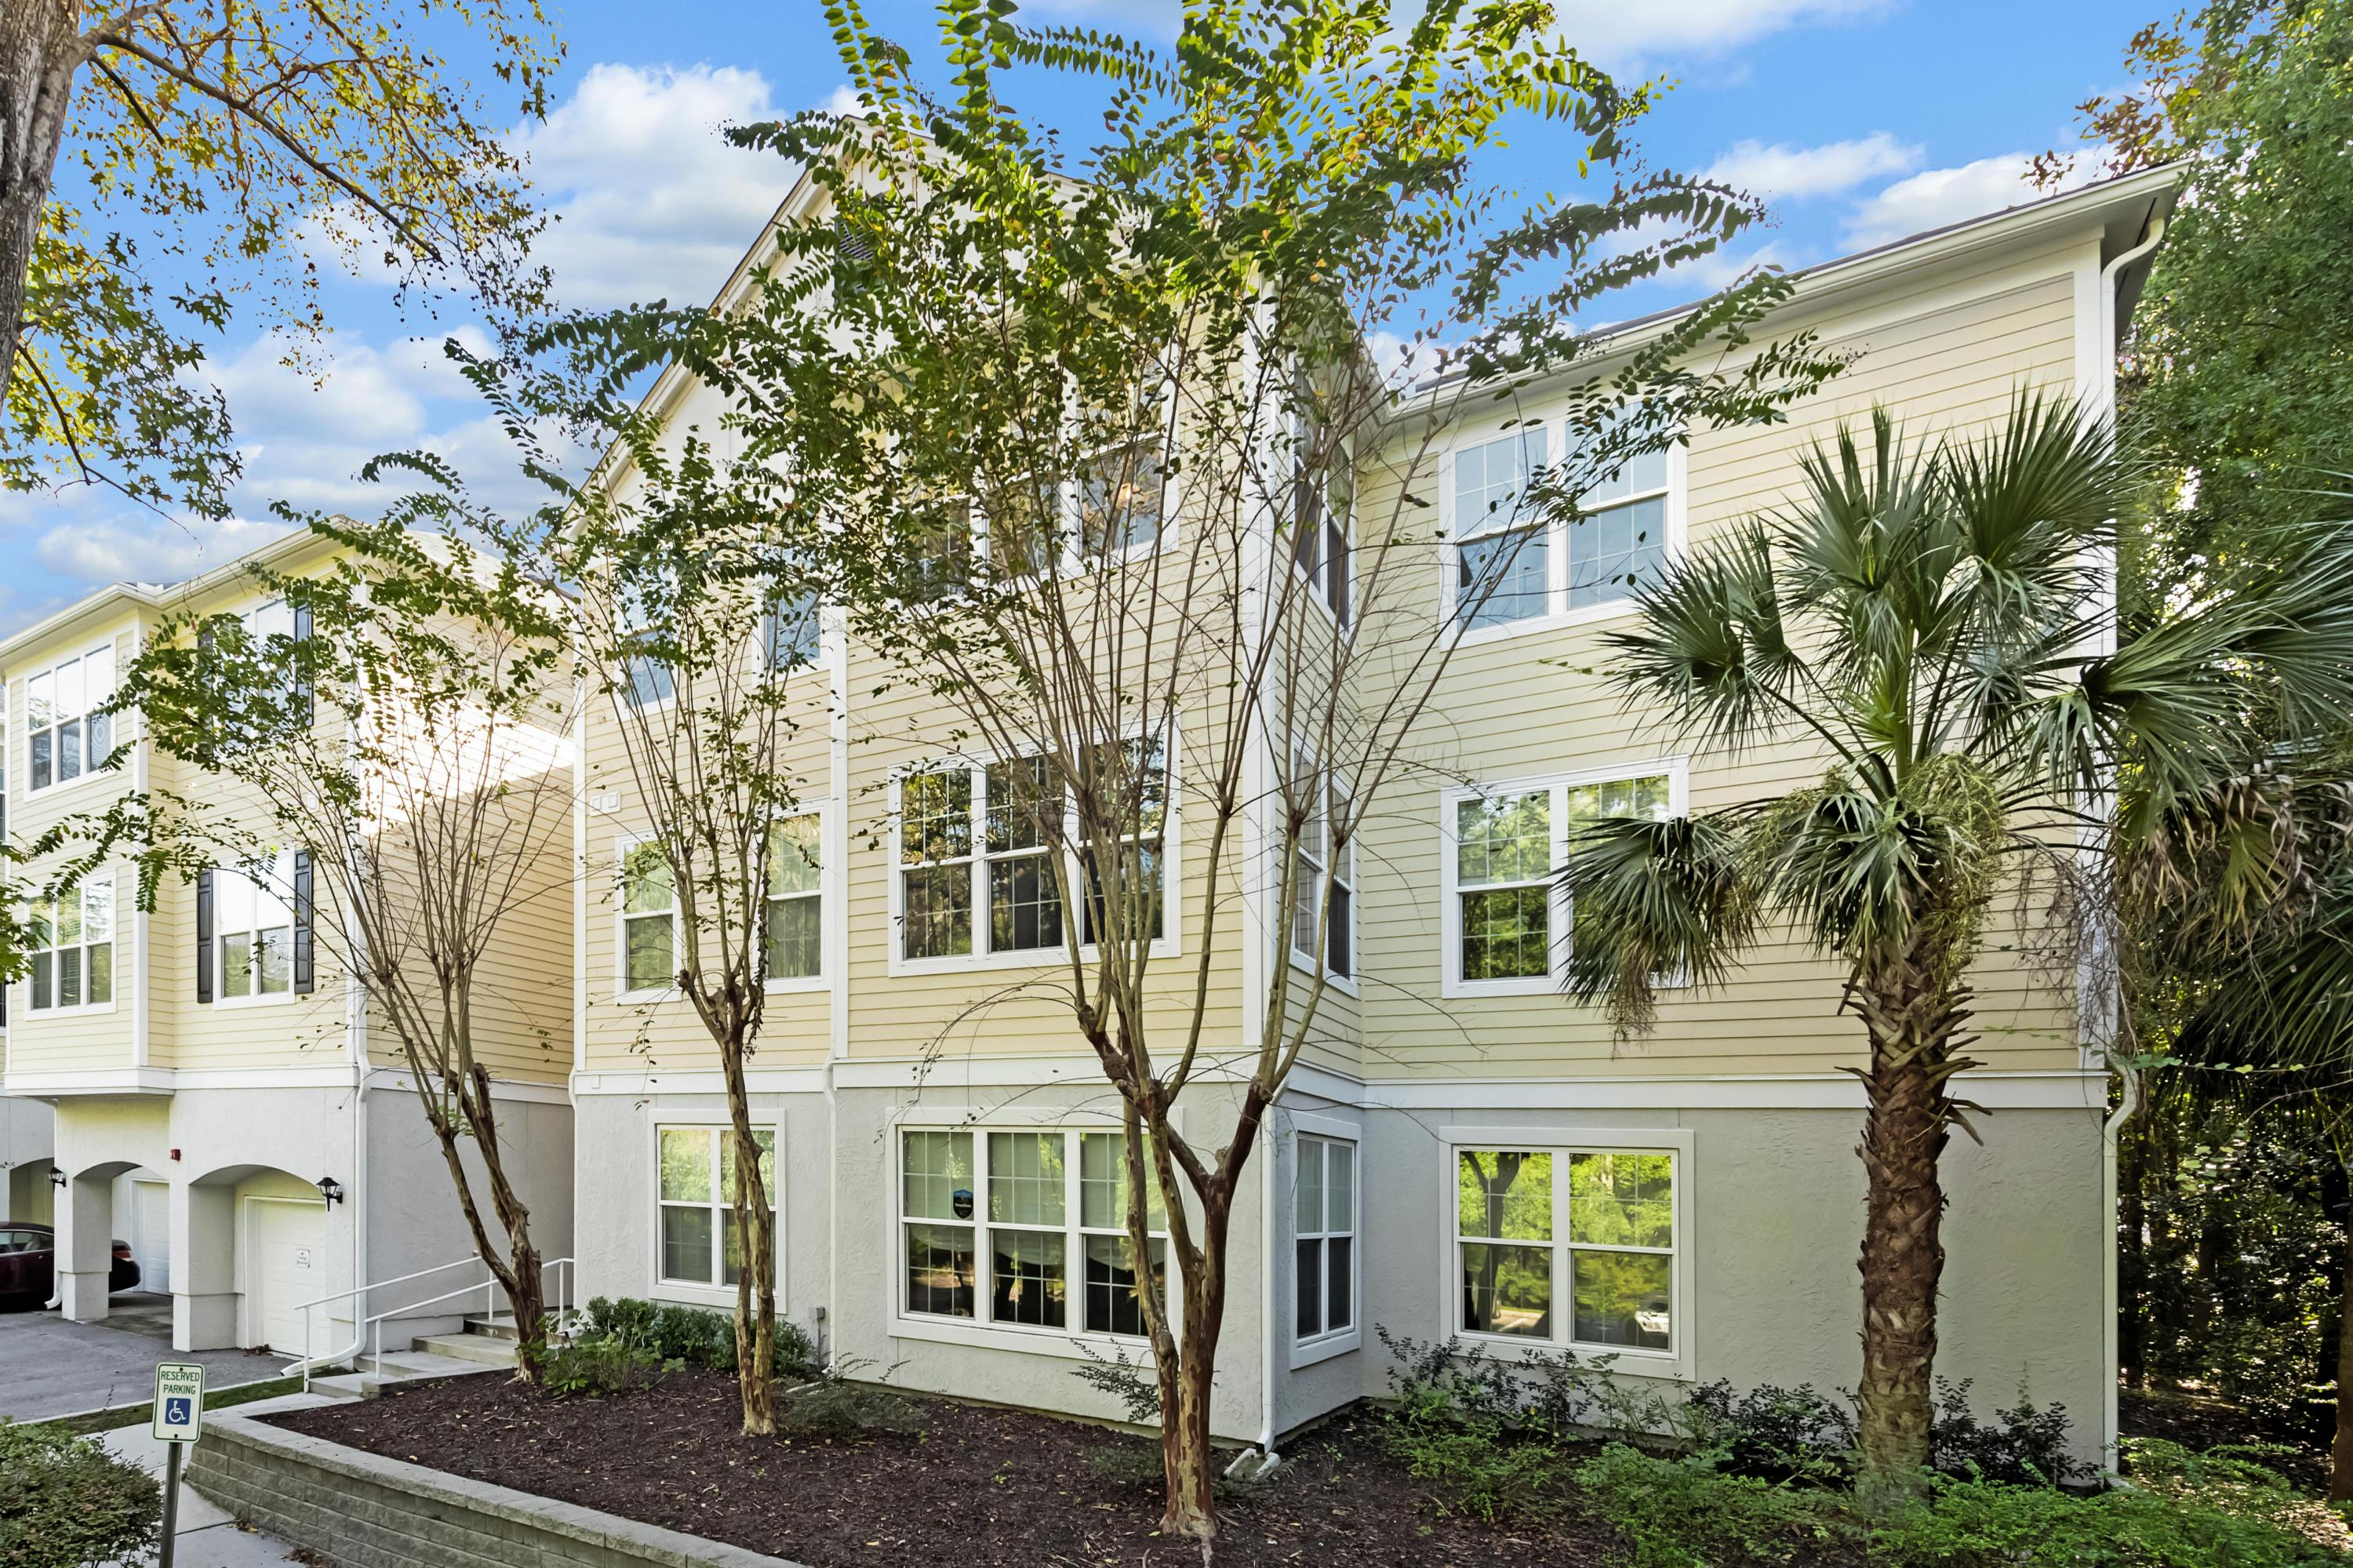 60 Fenwick Hall Alley UNIT #731 Johns Island, SC 29455